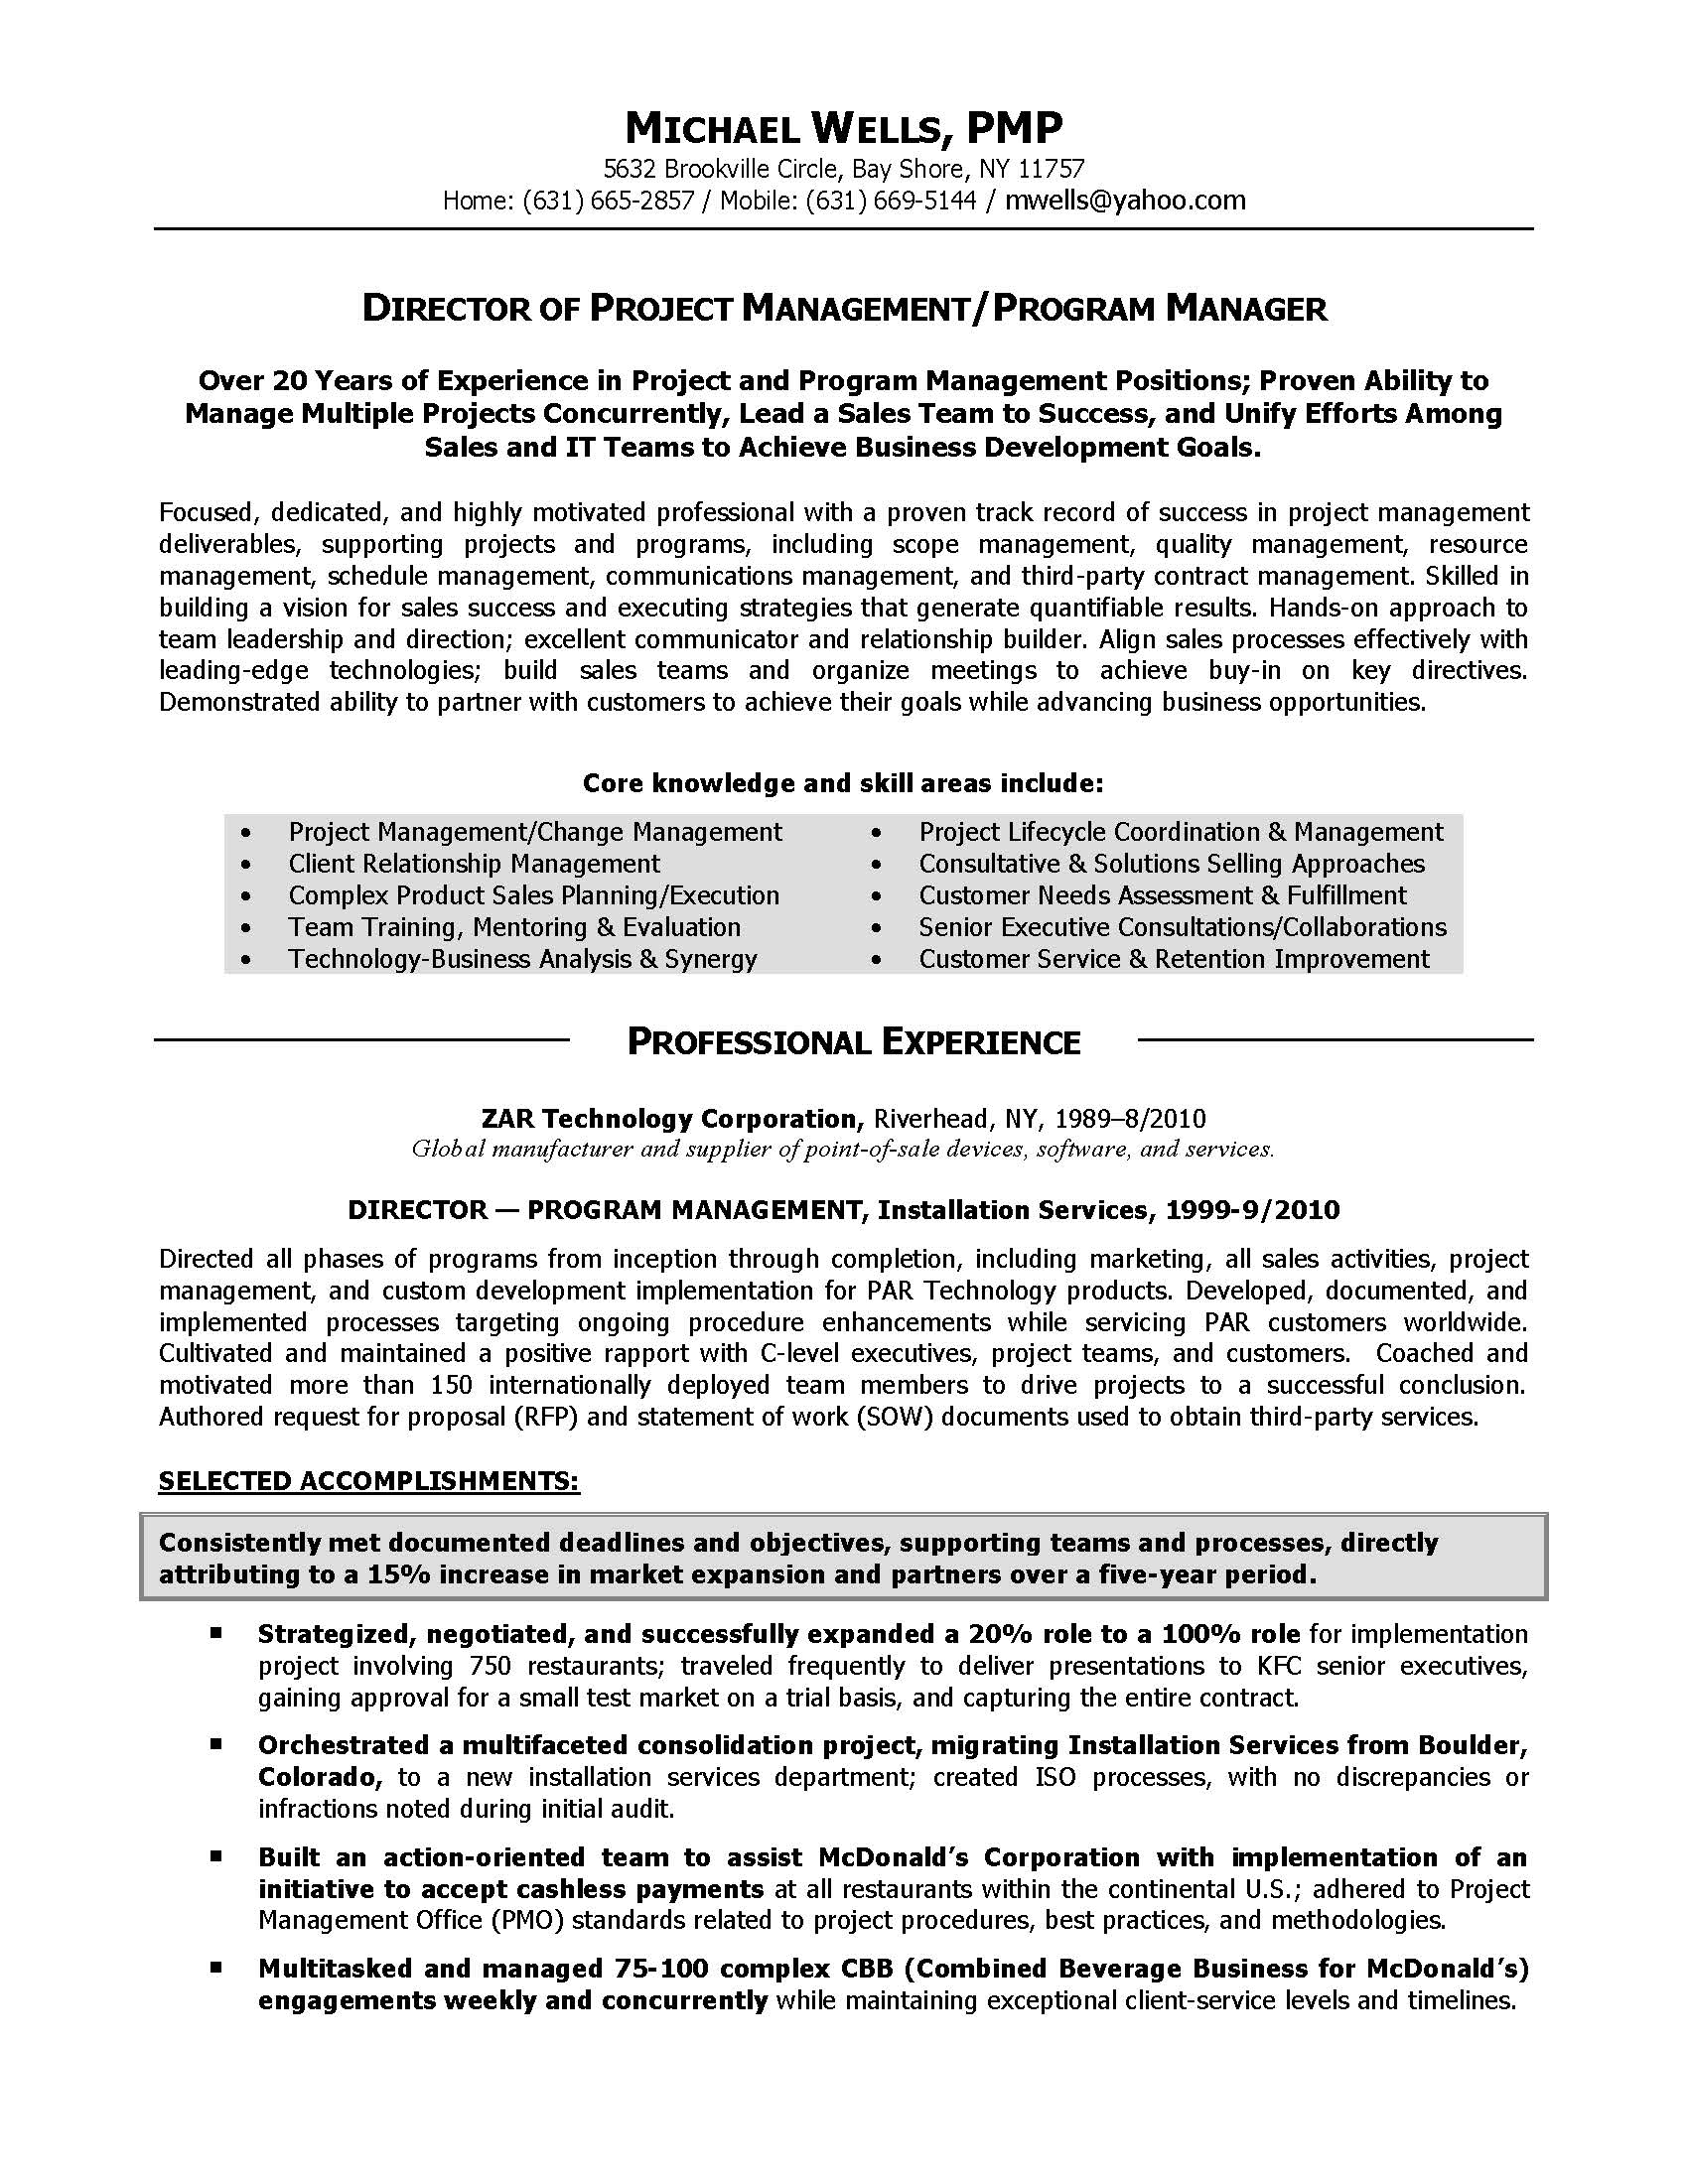 project management director resume sample provided by elite resume writing services - Example Project Manager Resume